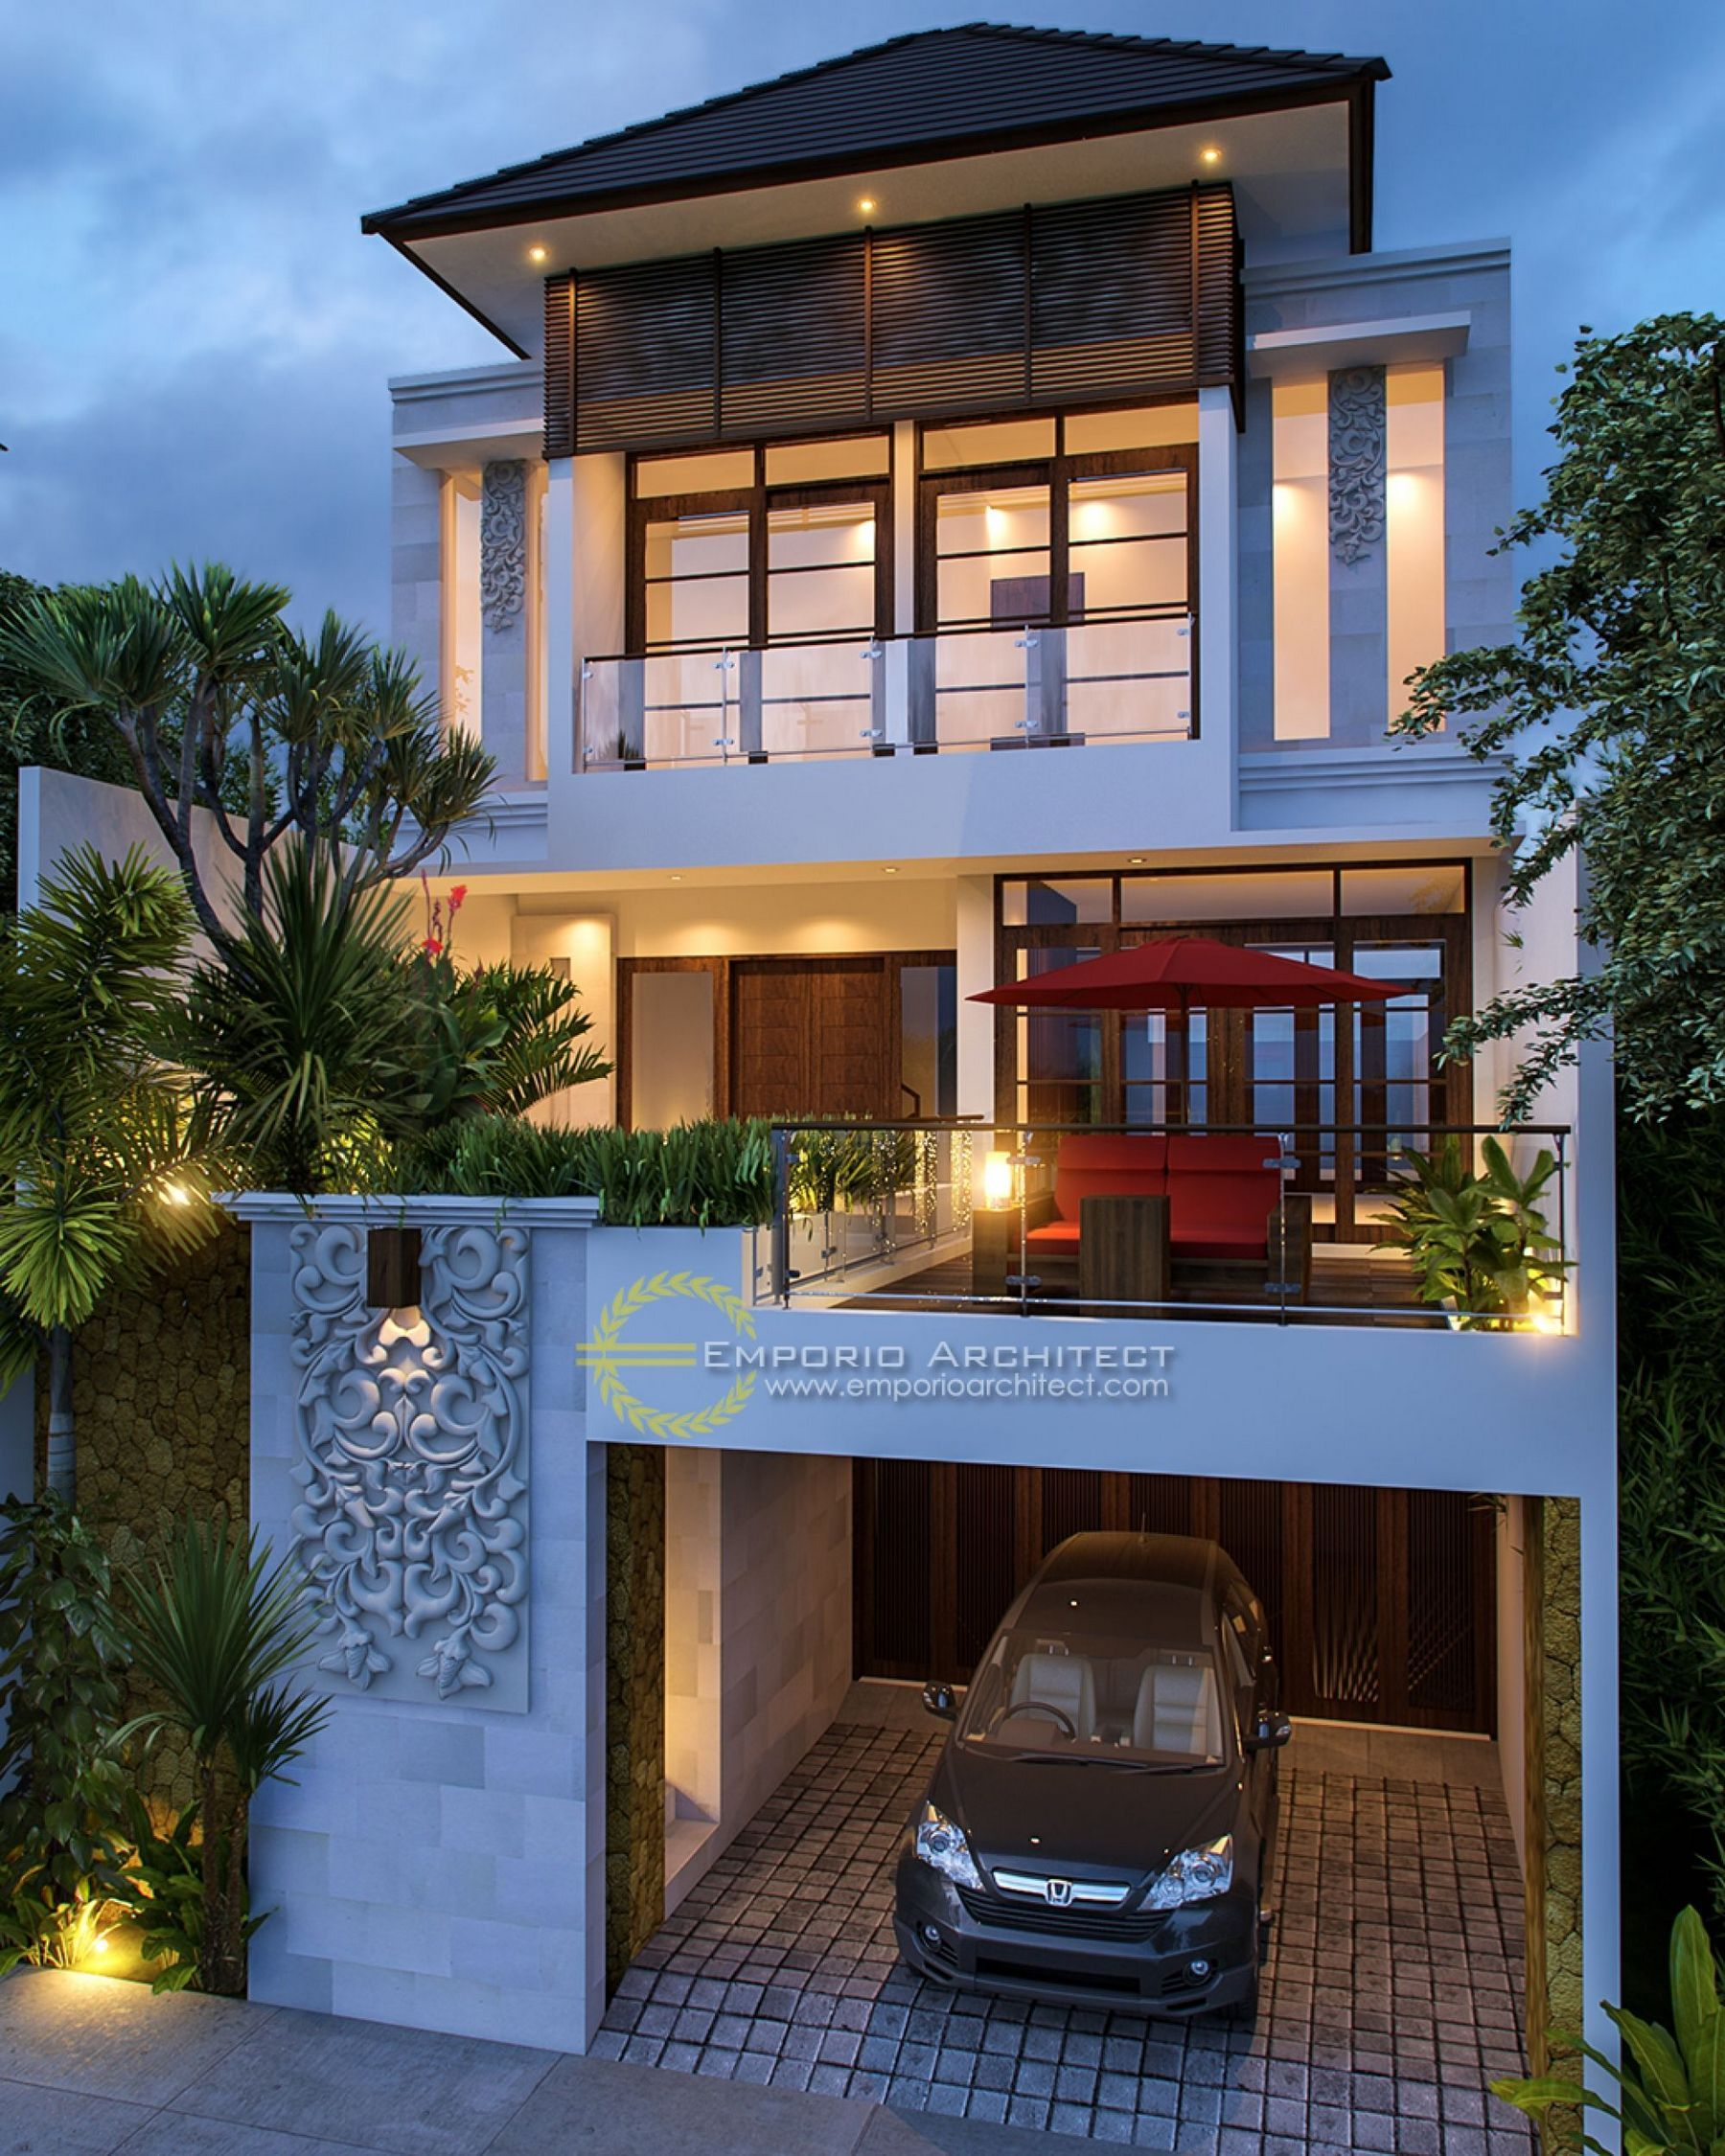 Bali Home Design: With A Superior Business, You Will Always Discover An